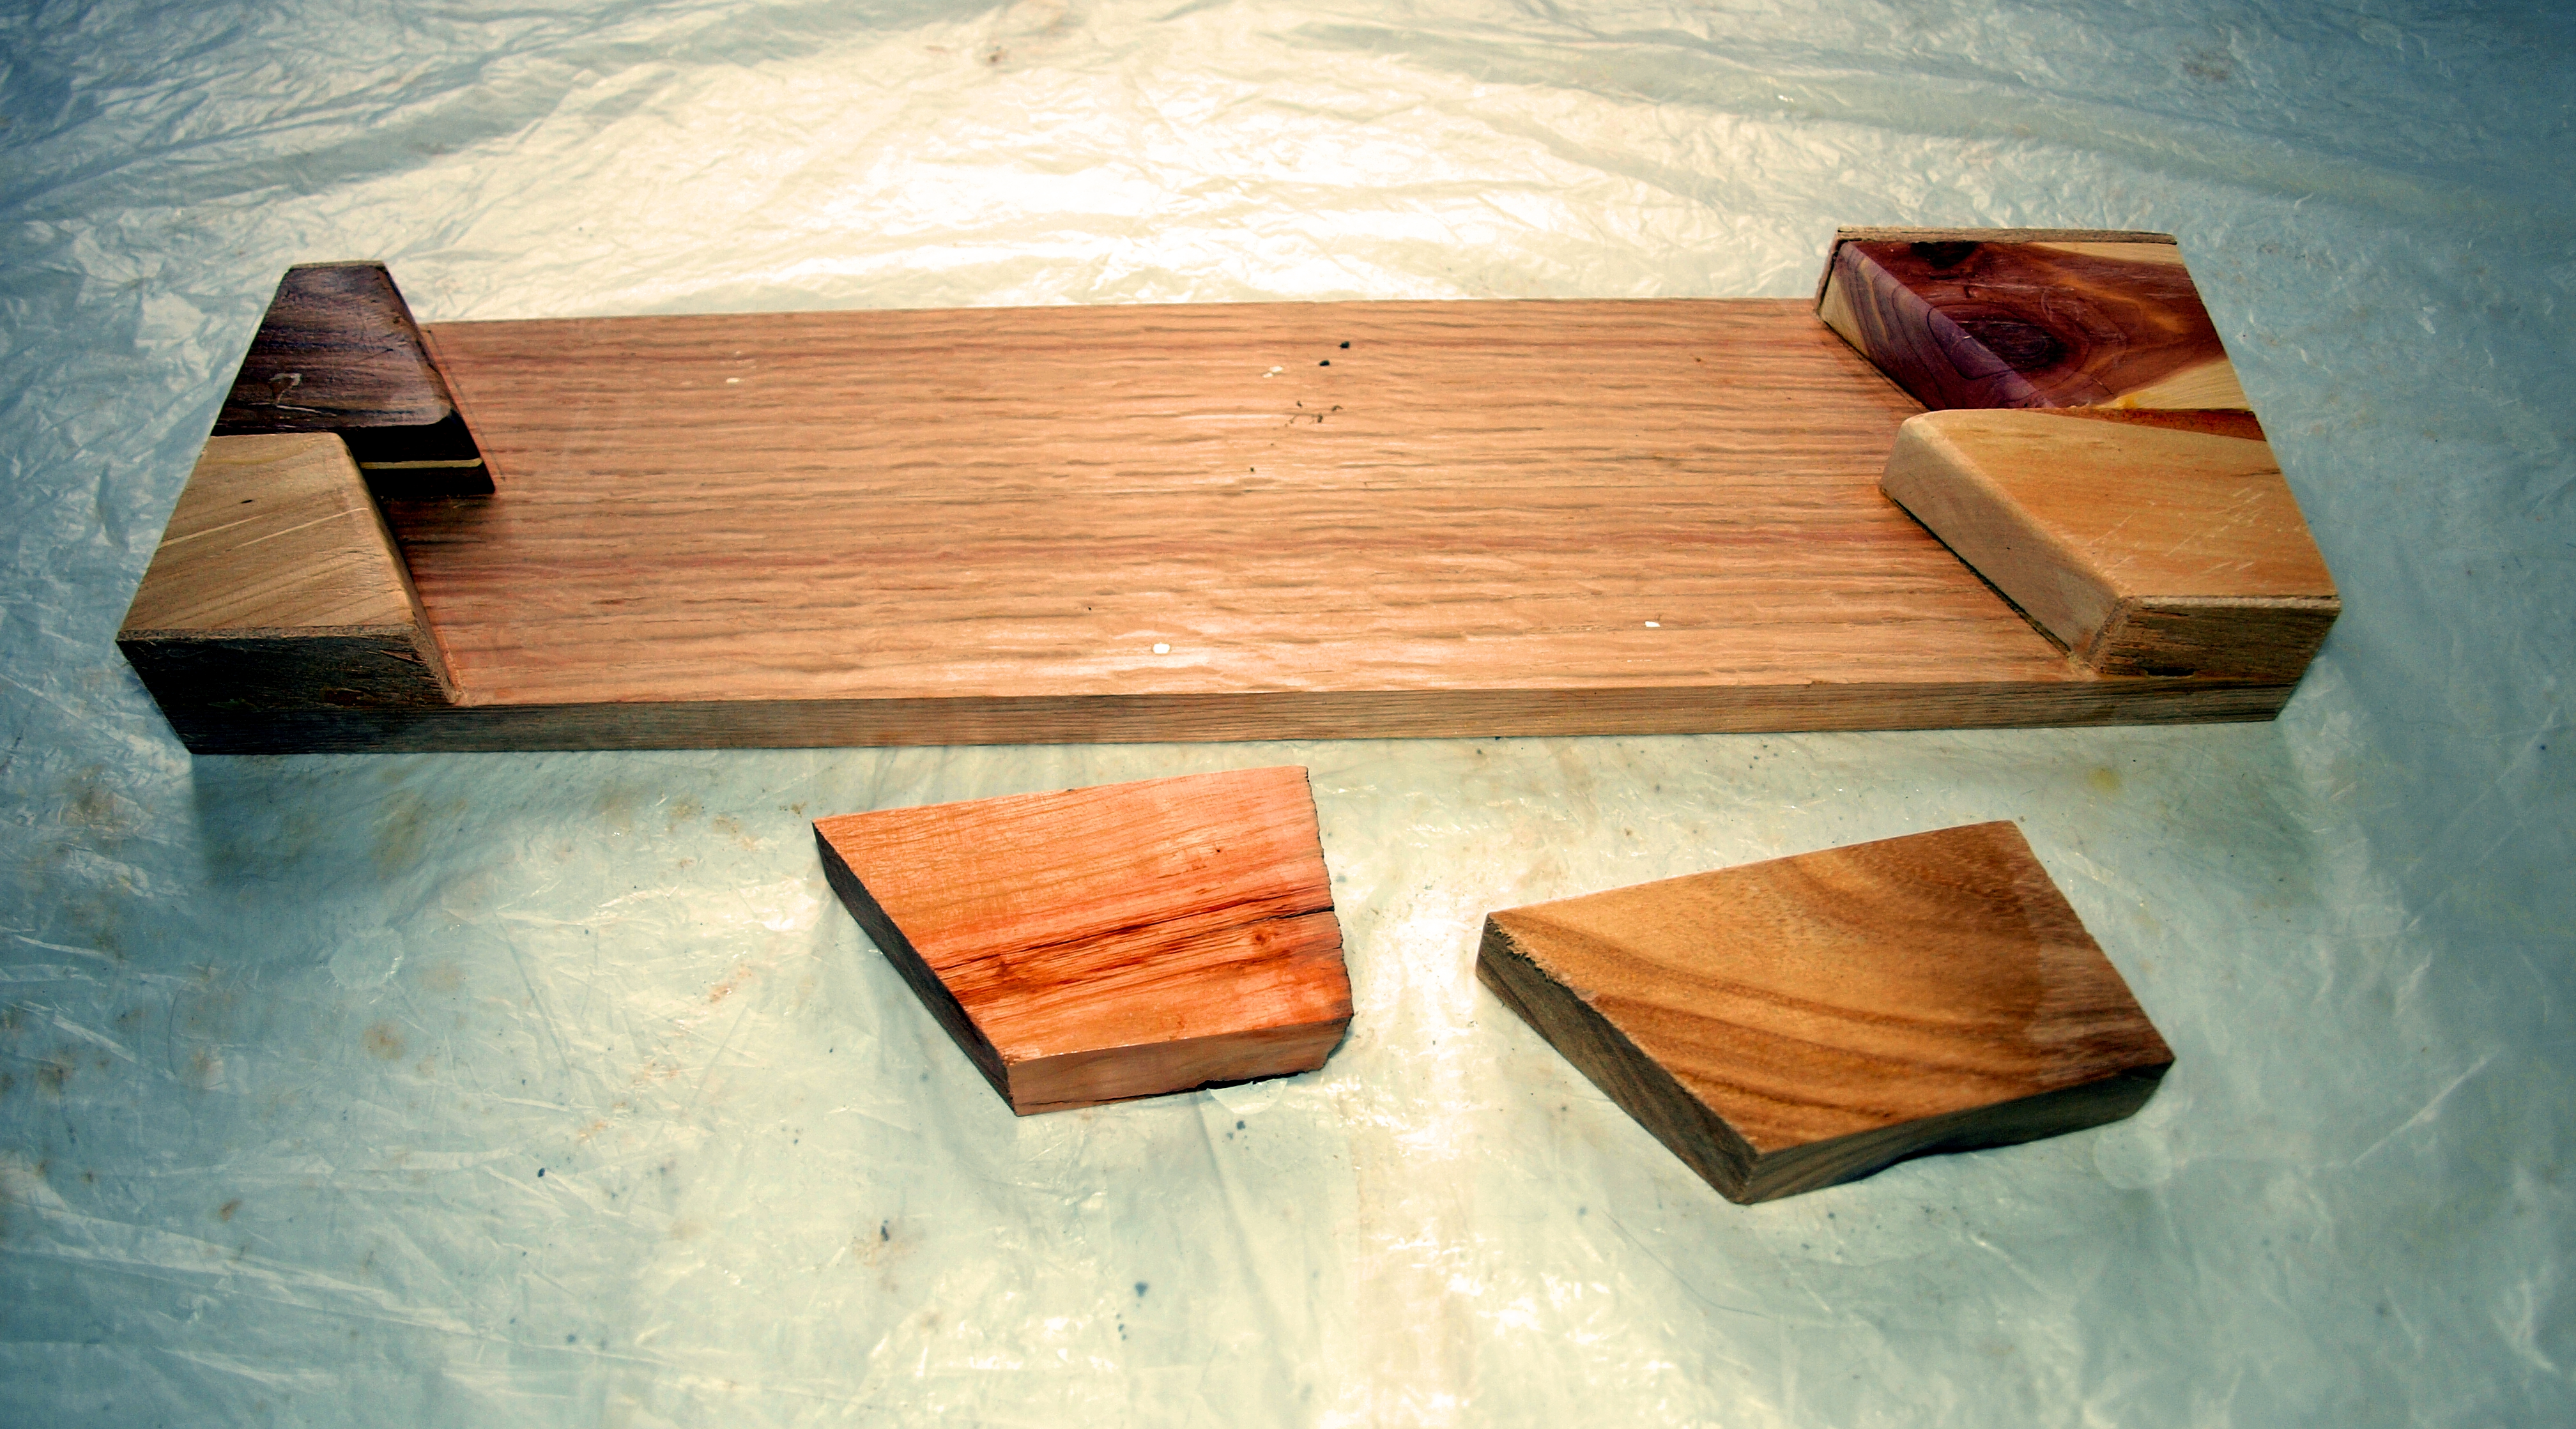 Picture of The Trays for the Puzzle Parts